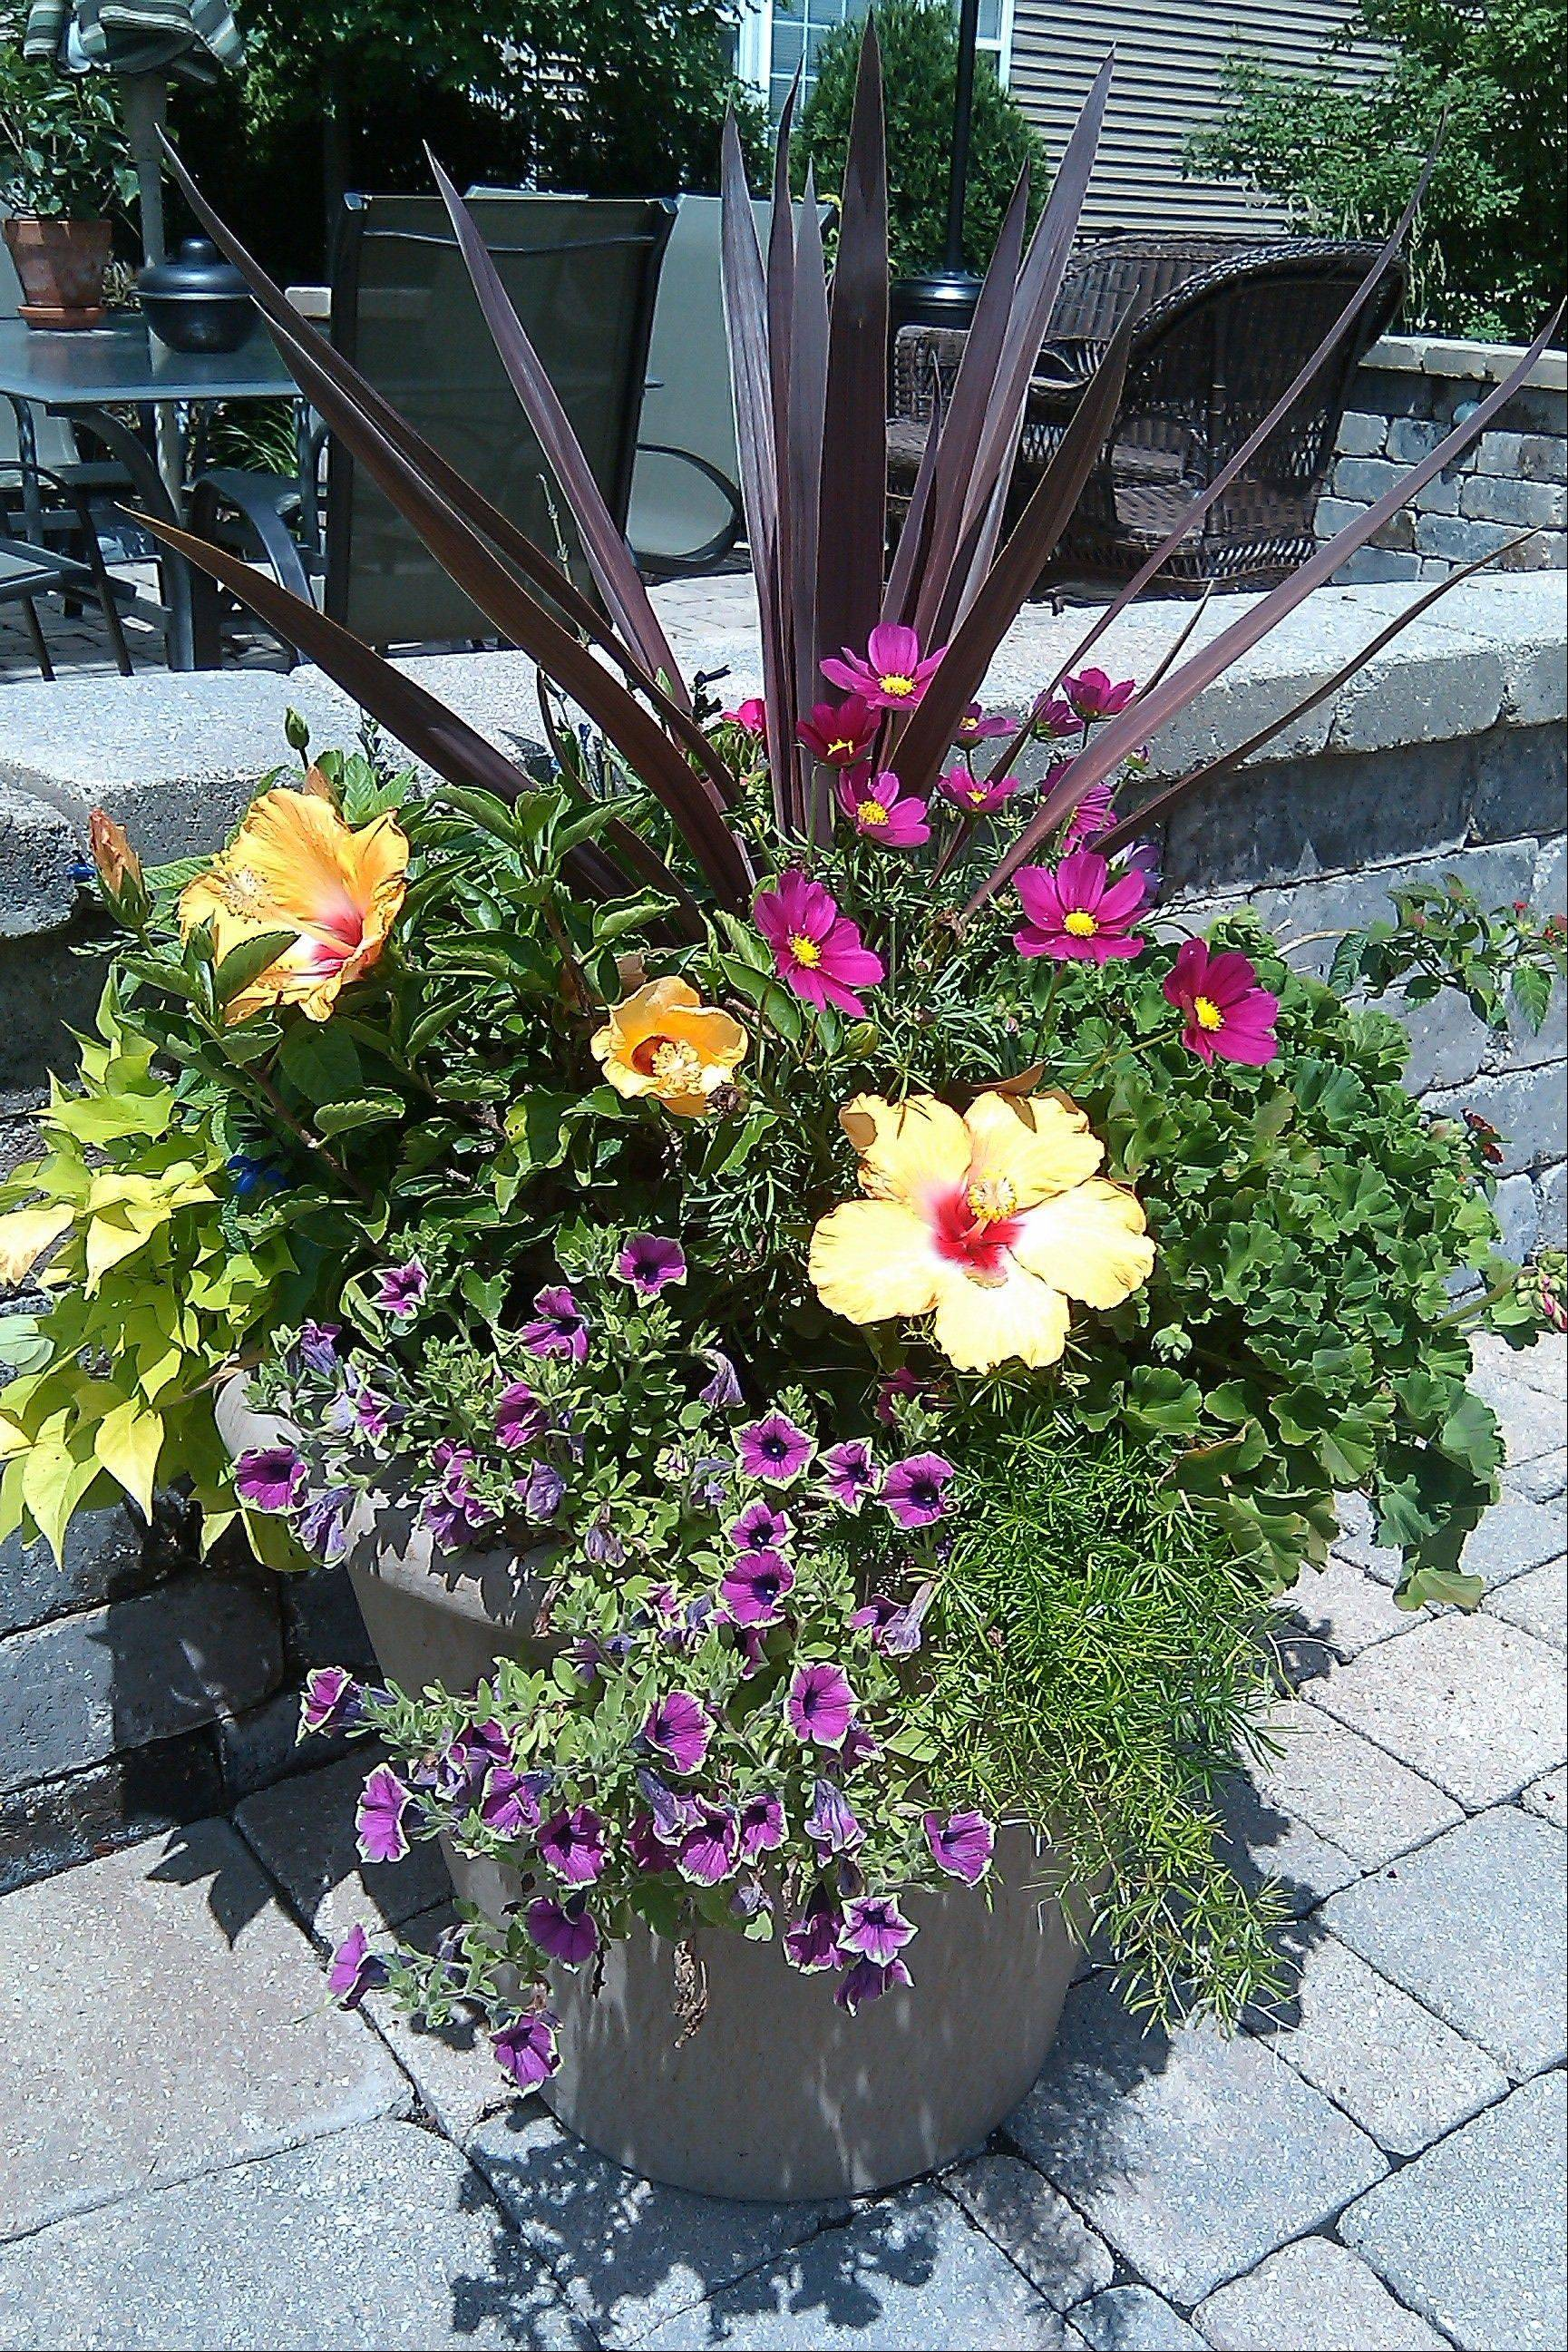 A decorative container filled with seasonal plantings will add a finishing touch to the front entry.